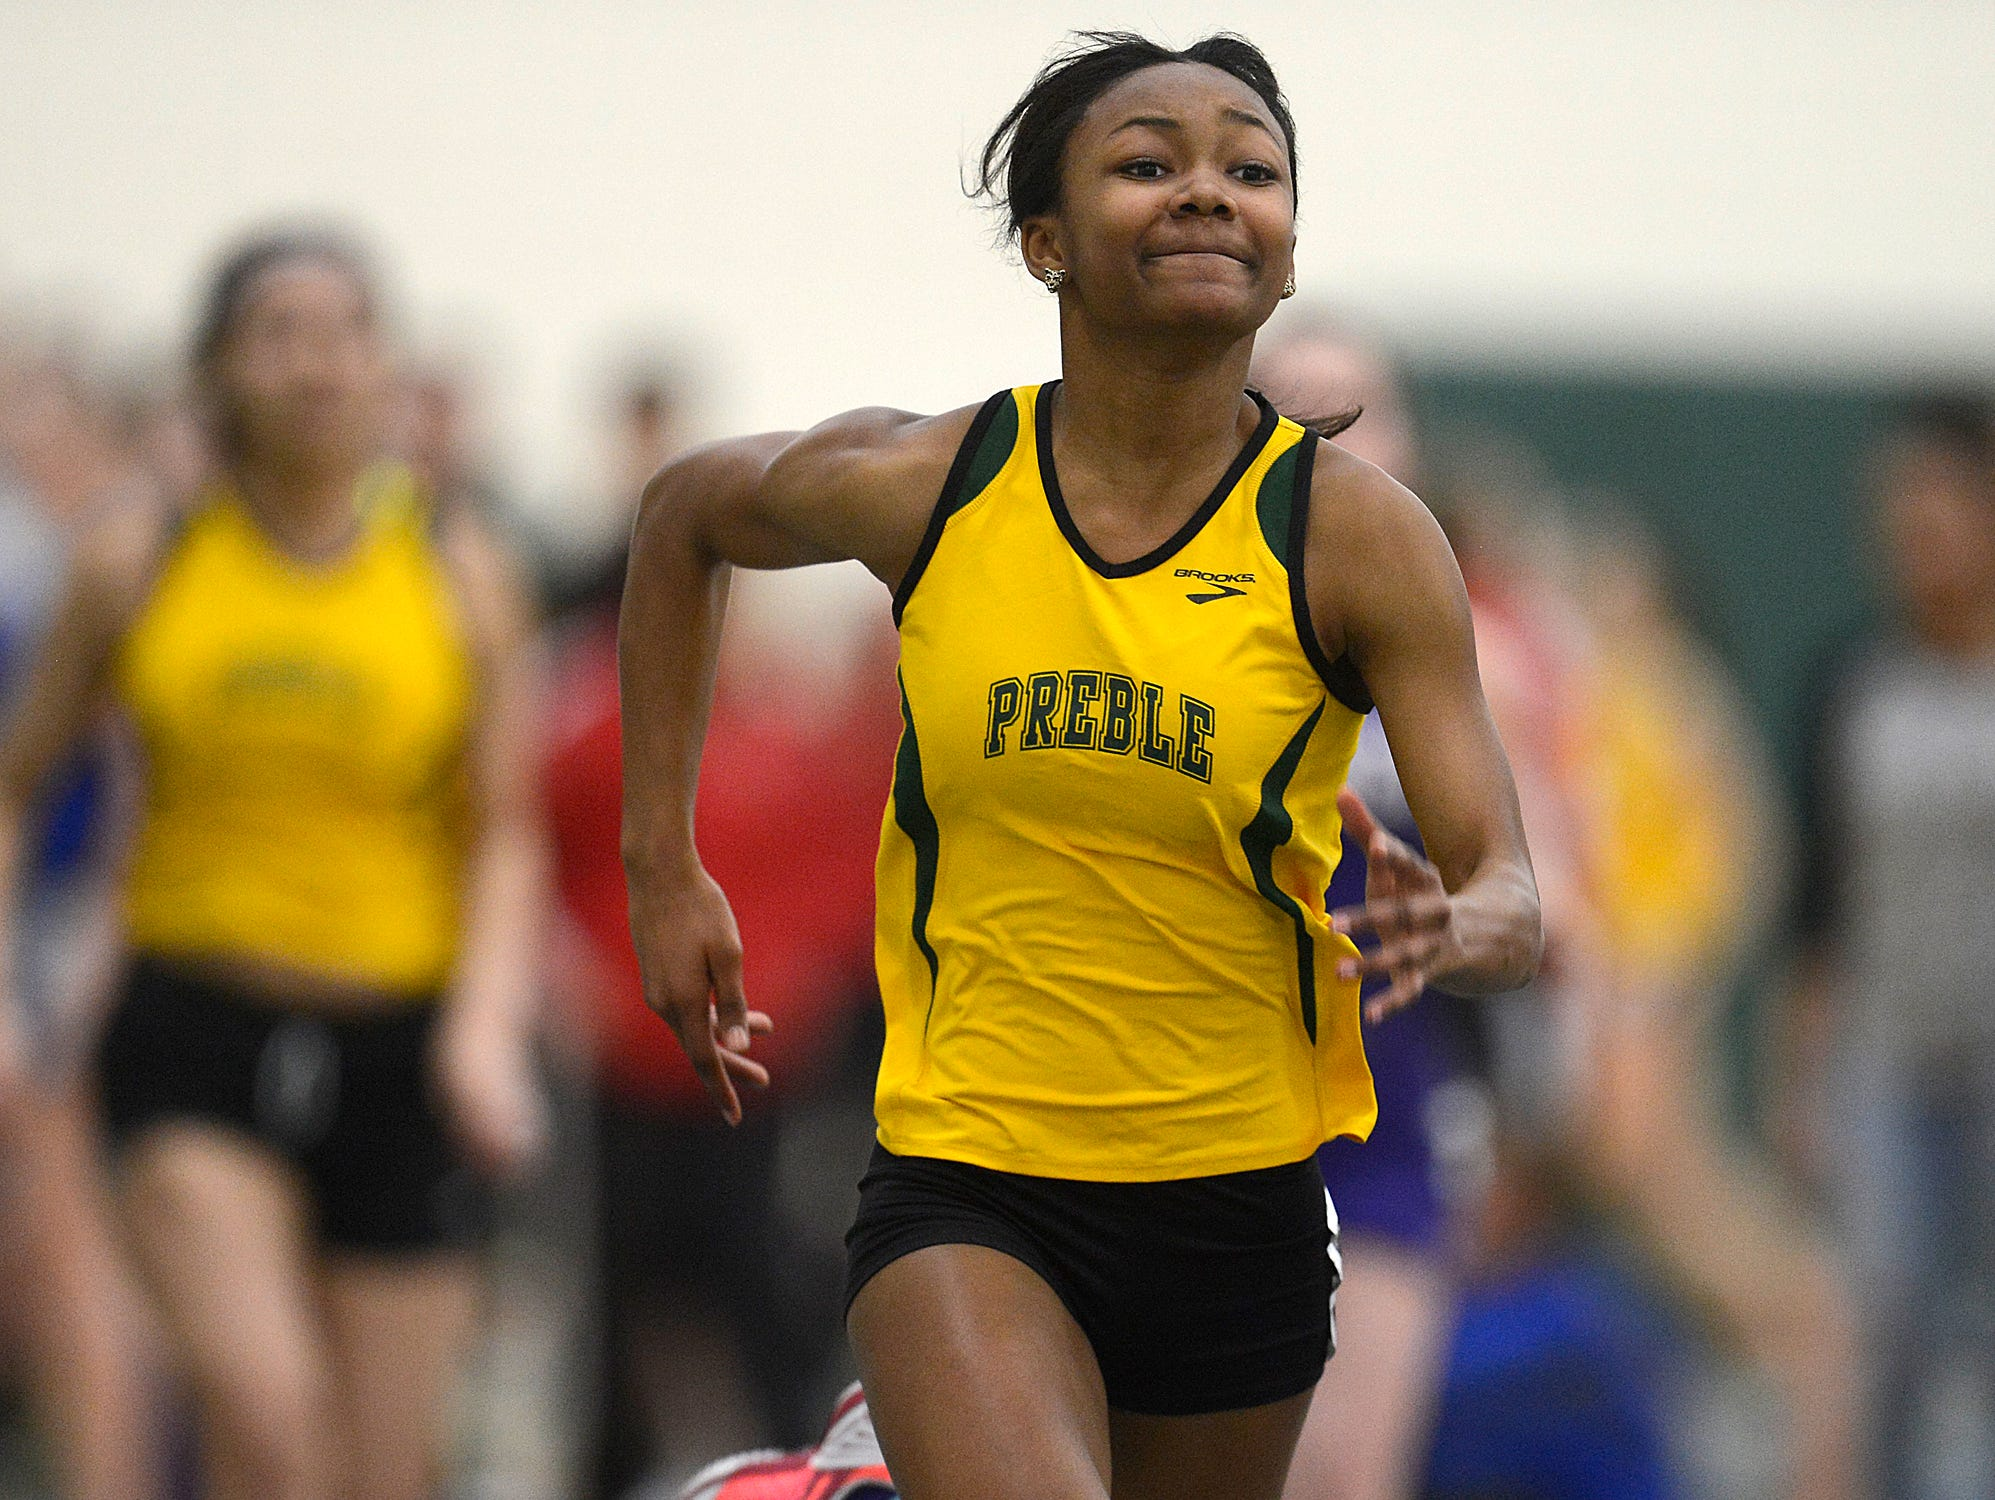 Green Bay Preble's Shai' Deja Cooper races towards the finish line while competing in the 45 meter dash during the 16th annual Preble Indoor Invitational at Green Bay Preble High School on Wednesday, March 18, 2015.